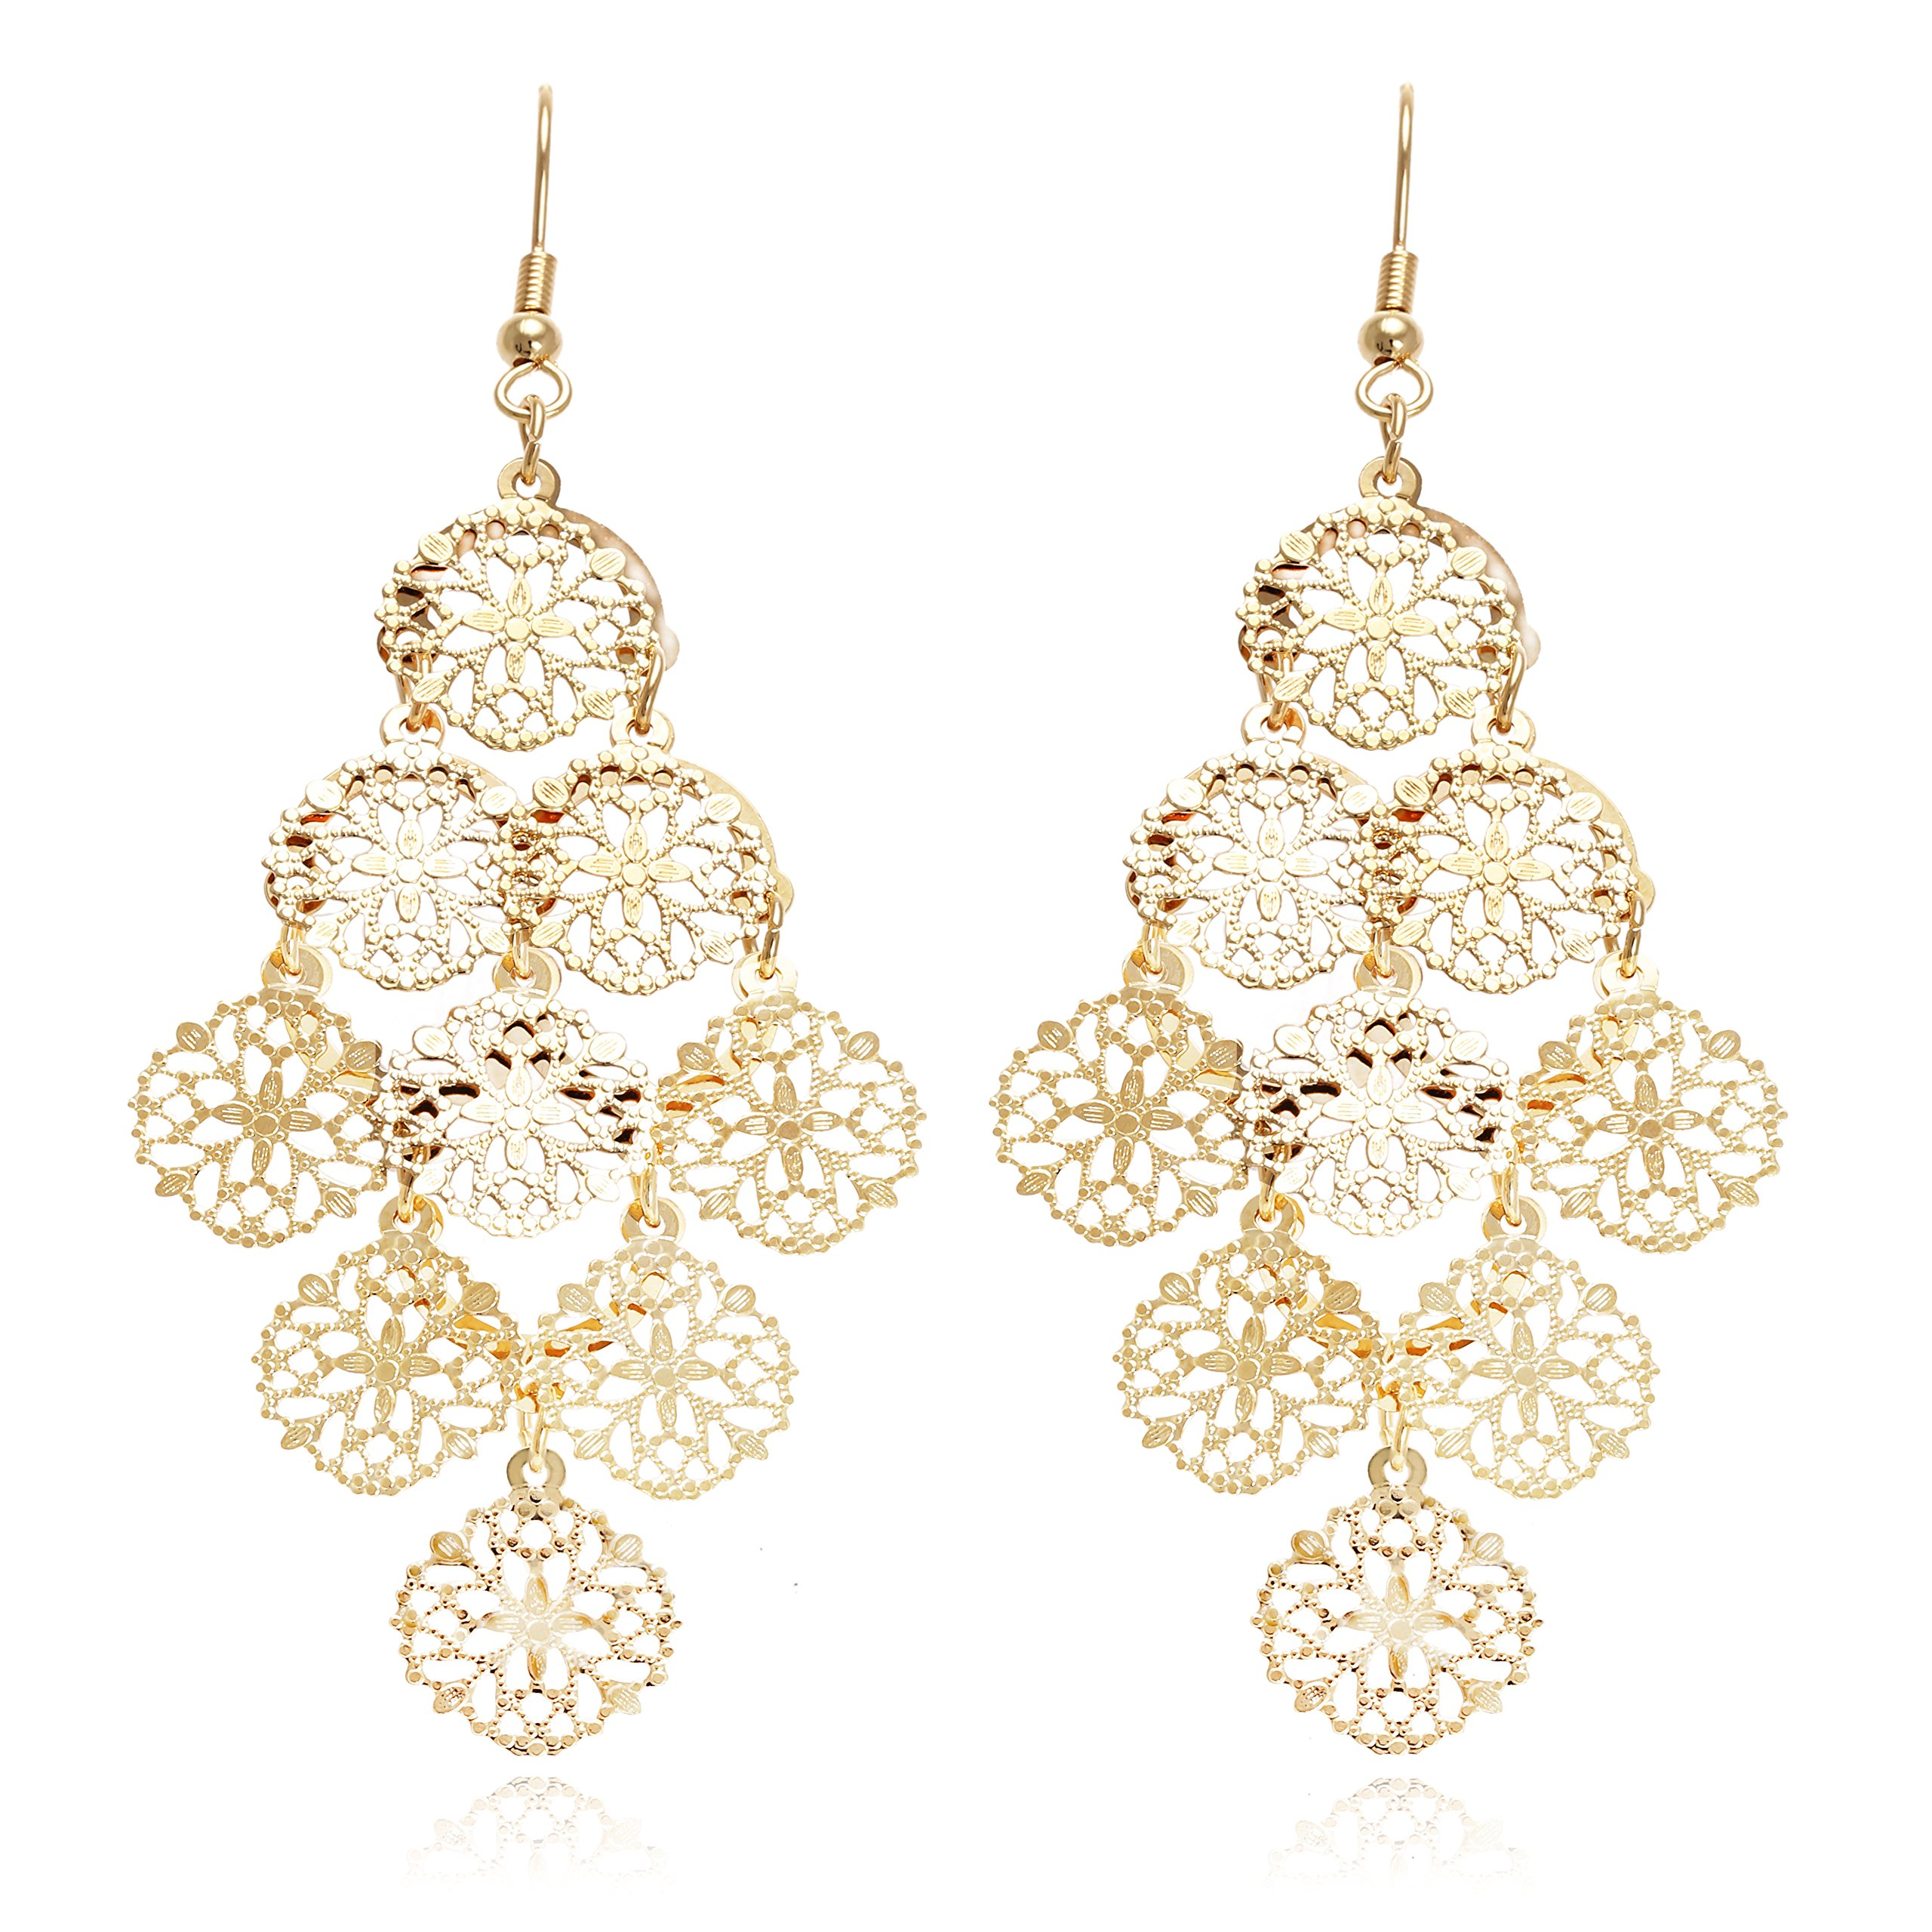 Boho Filigree Flower Motif Rhombus Shape Chandelier Tiered Dangle Statement Earrings